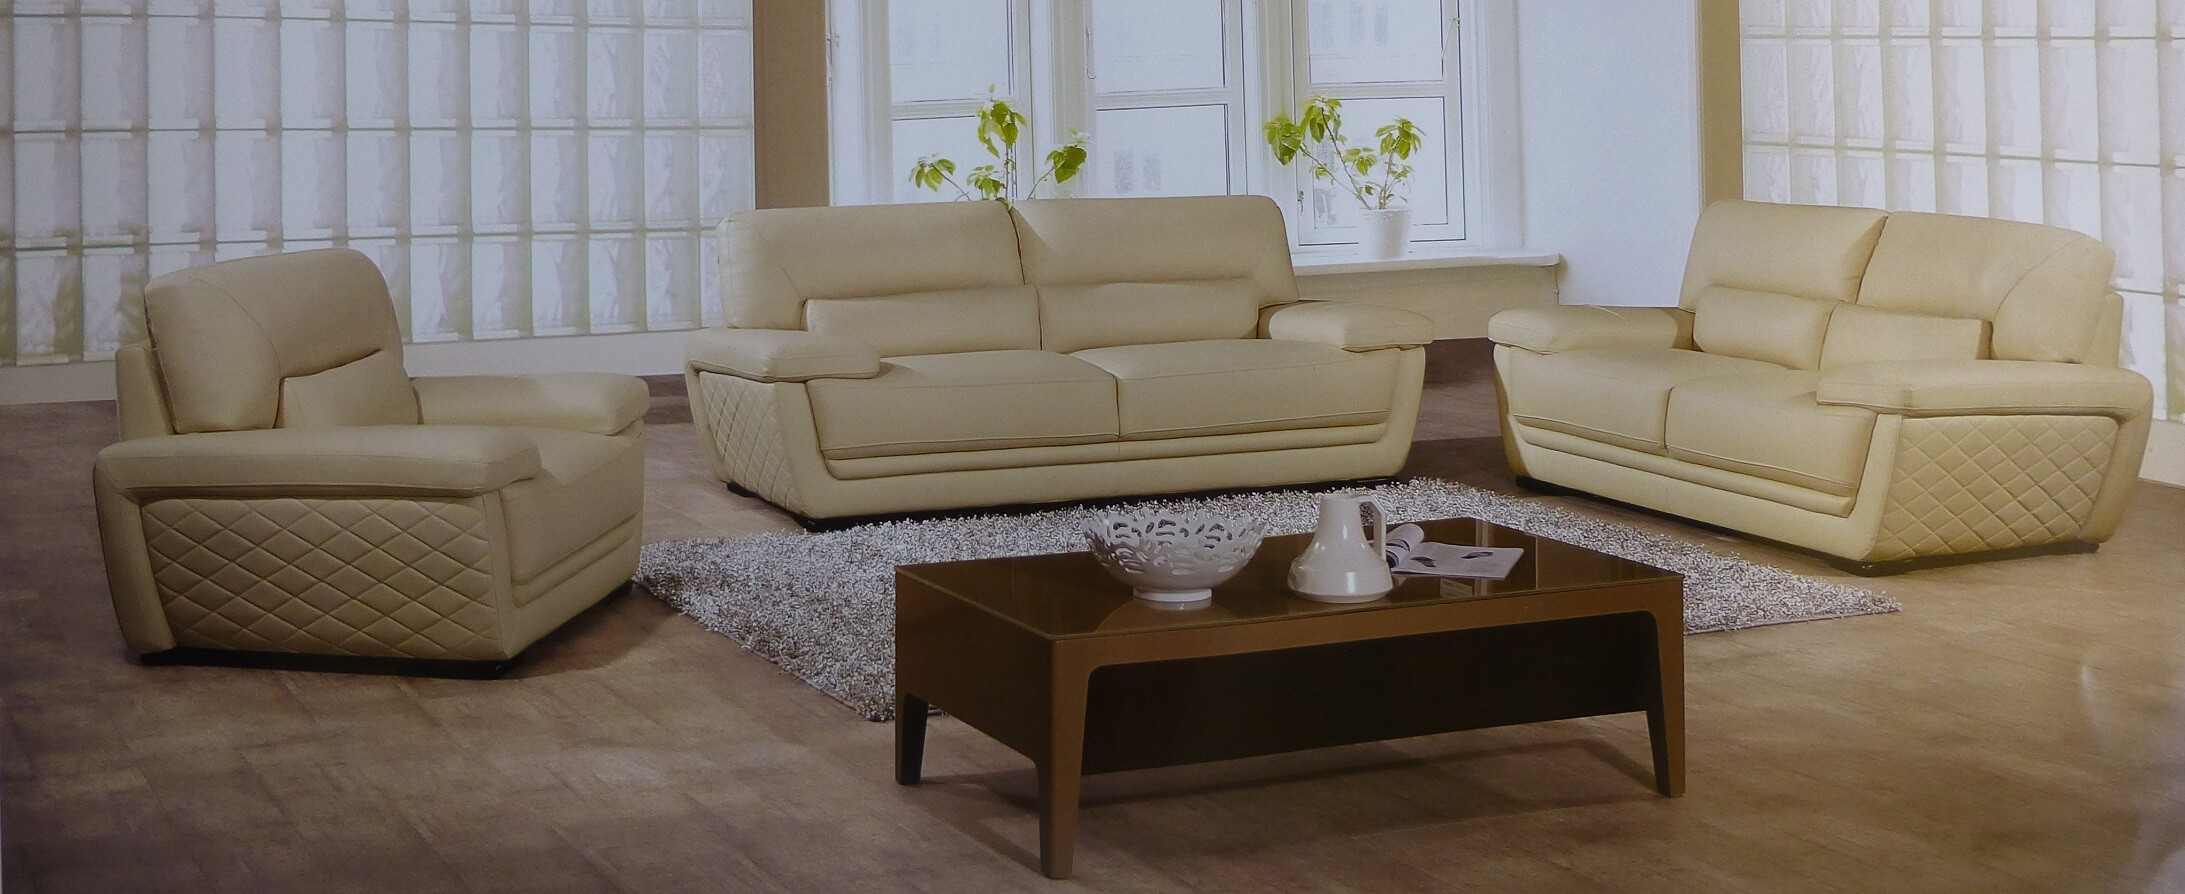 Clark Italian Cream Leather Sofa Set